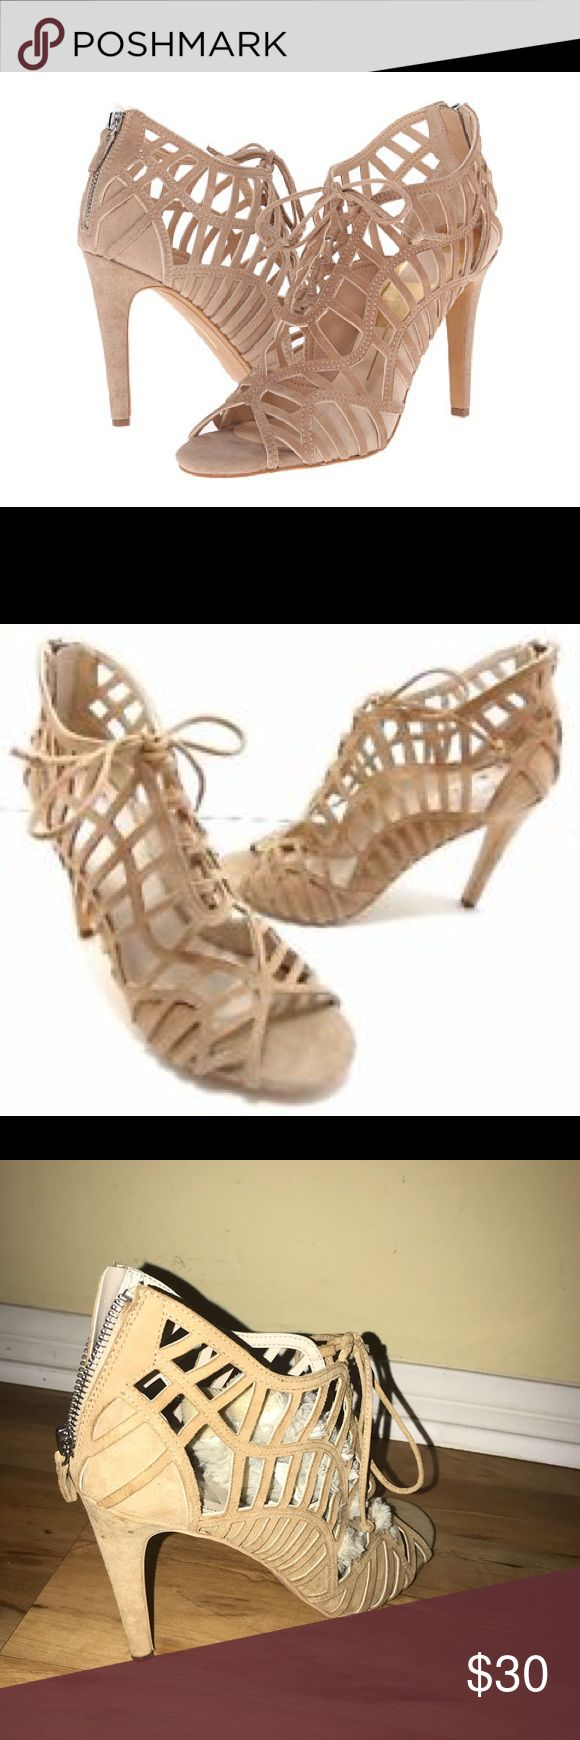 DV dolce Vita open toe cage heel Open toe caged lace up heel/sandal. Nude. 4 Inch heel. Worn only twice Dolce Vita Shoes Heels